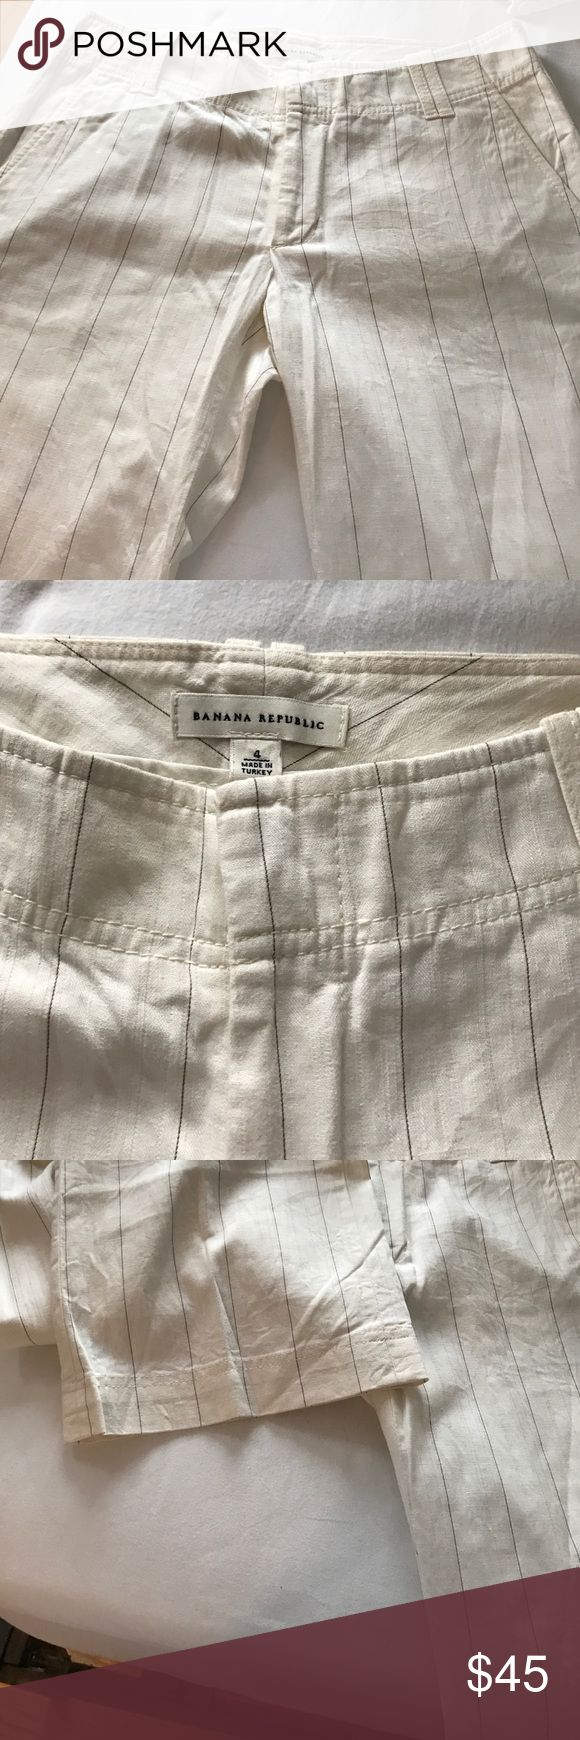 Banana Republic Trousers Beige striped beautiful Banana Republic Trousers with flap pockets in the back. Banana Republic Pants Trousers